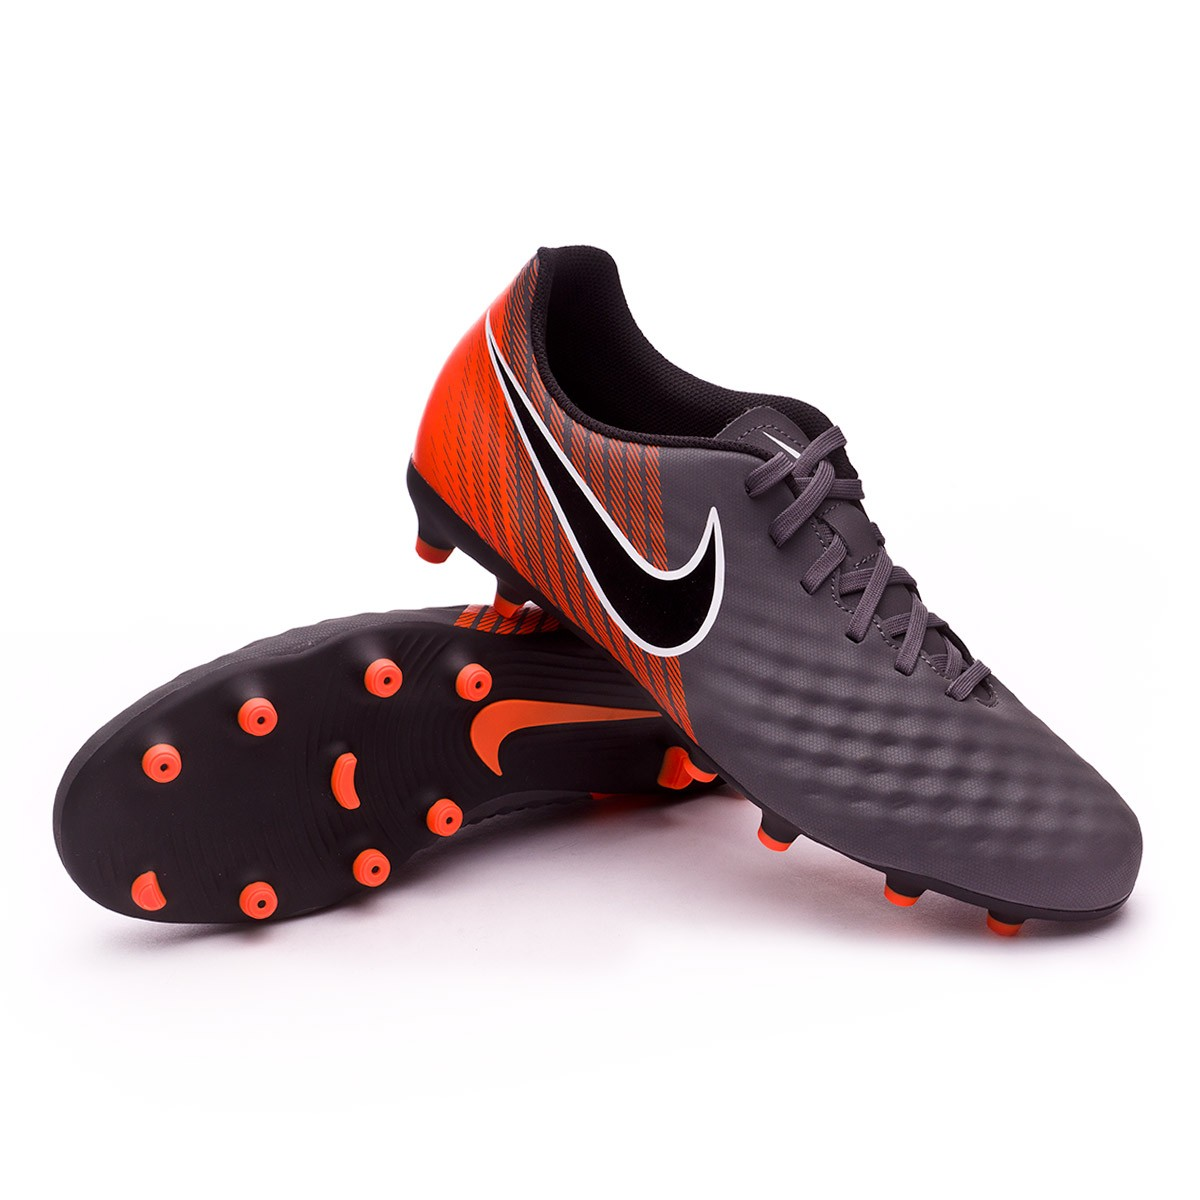 0b7138eaee0 Football Boots Nike Magista Obra II Club FG Dark grey-Black-Total ...